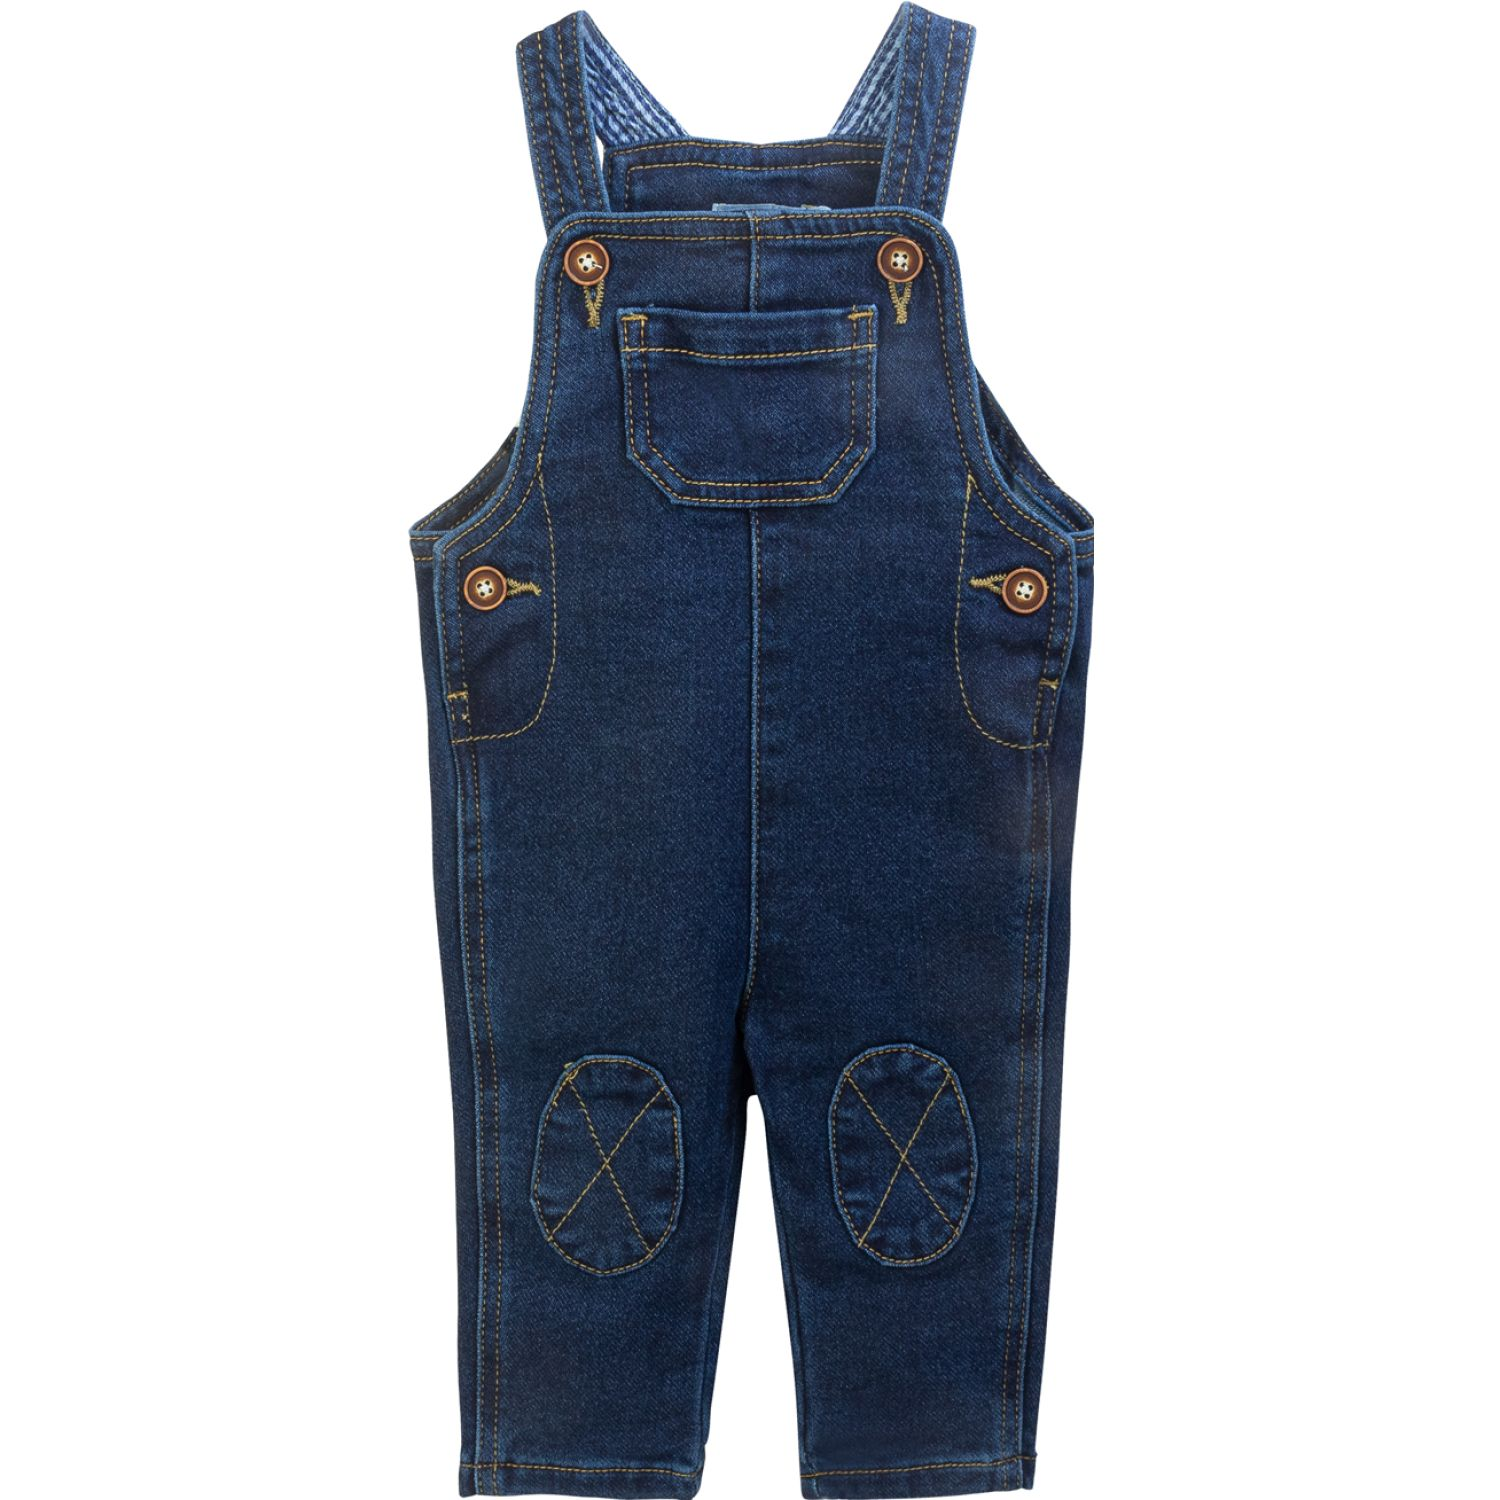 BABY CLUB CHIC Overall Jean C/Bord.Ind Azul Overoles